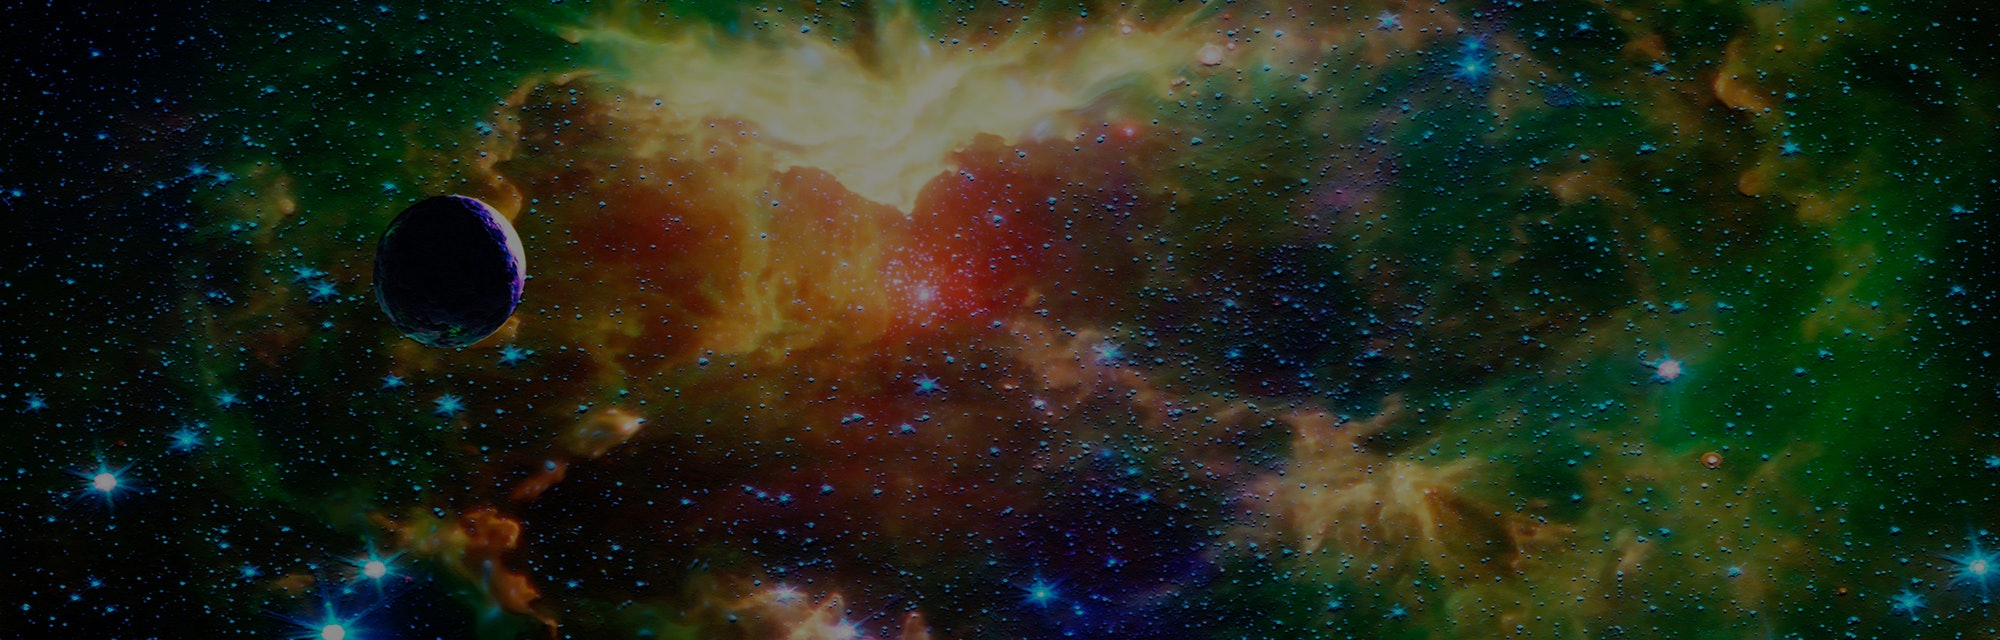 Abstract outer space fantasy art depicting a lonely rogue planet on it's long sunless journey throug...